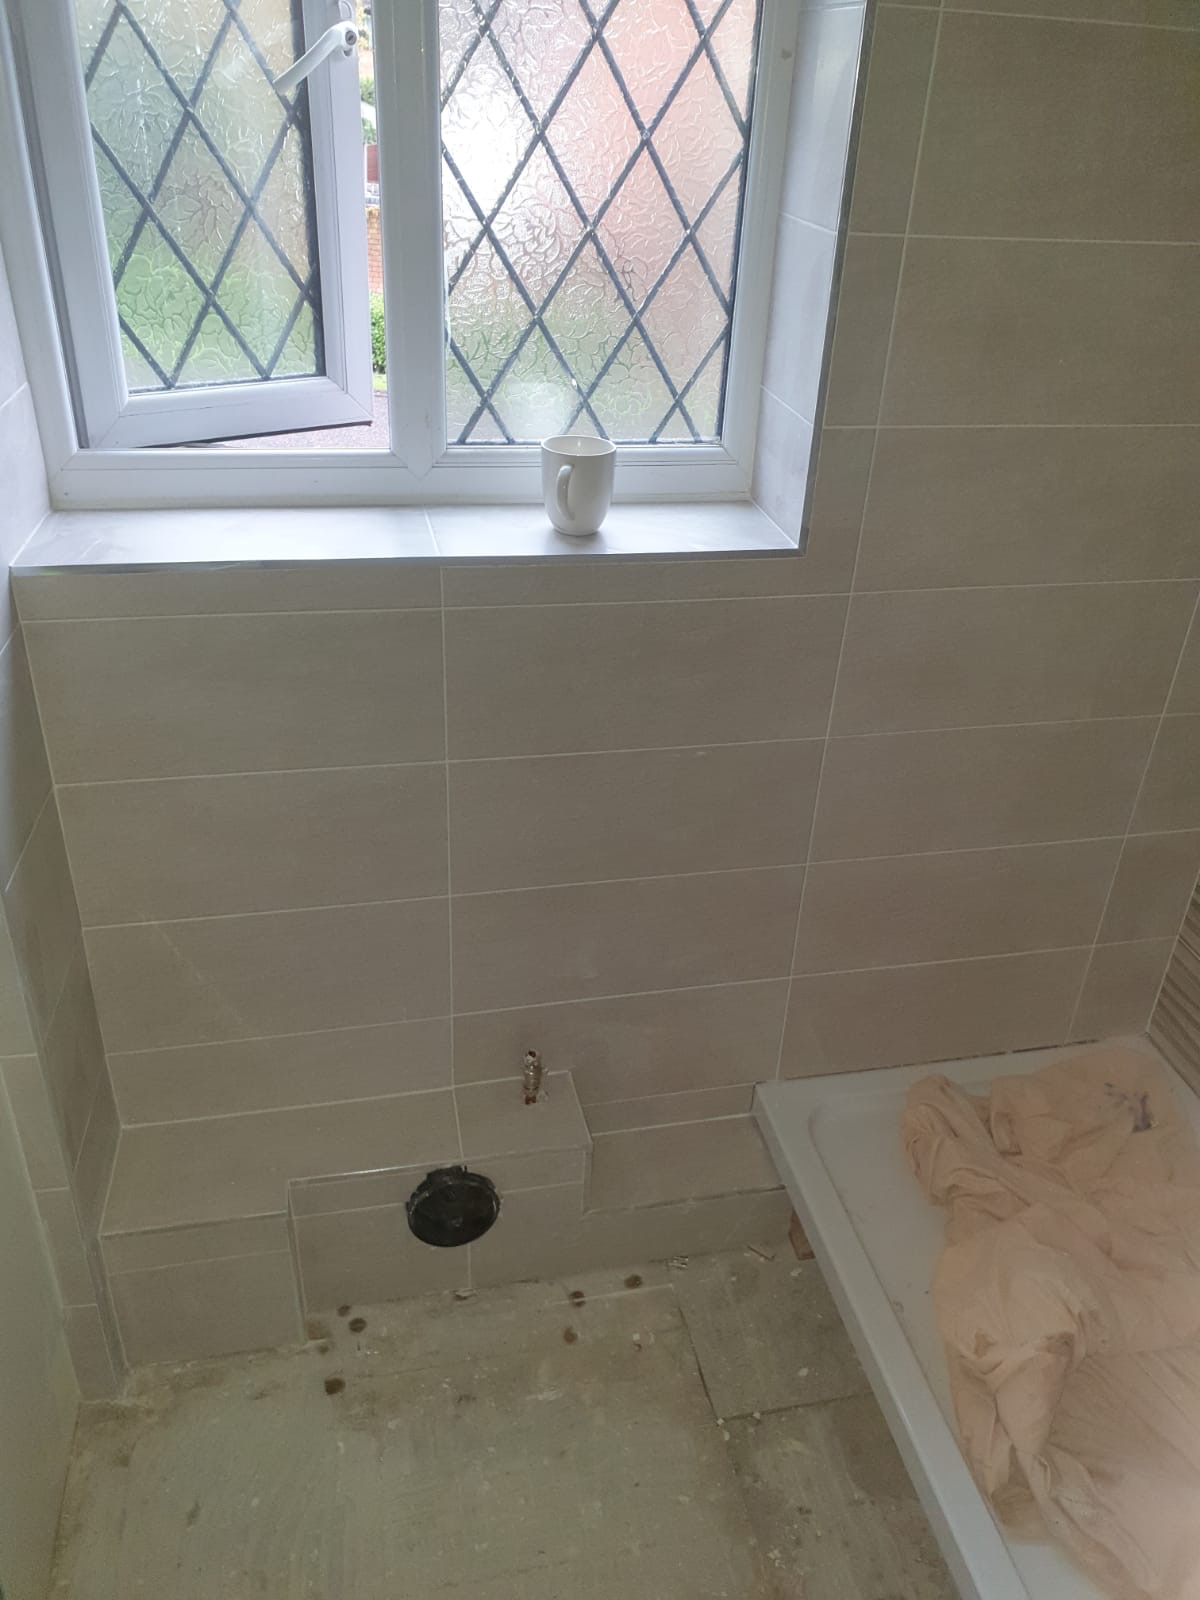 Tiling Around Waste Pipe Homematas, How To Tile Around A Waste Pipe Look Like